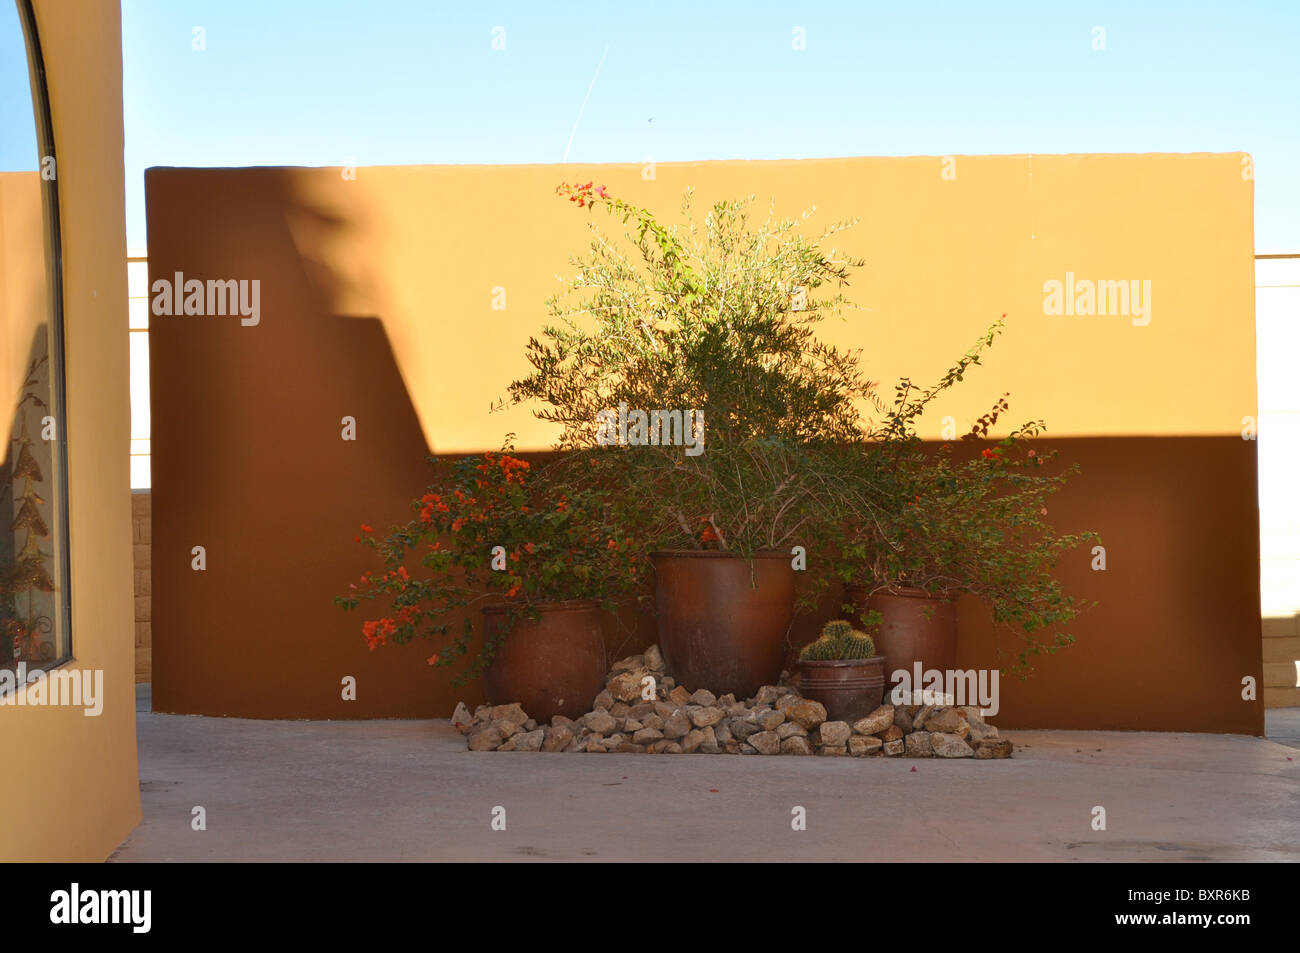 El Paseo, Palm Springs, California. Lighting, potted plants and wall ...